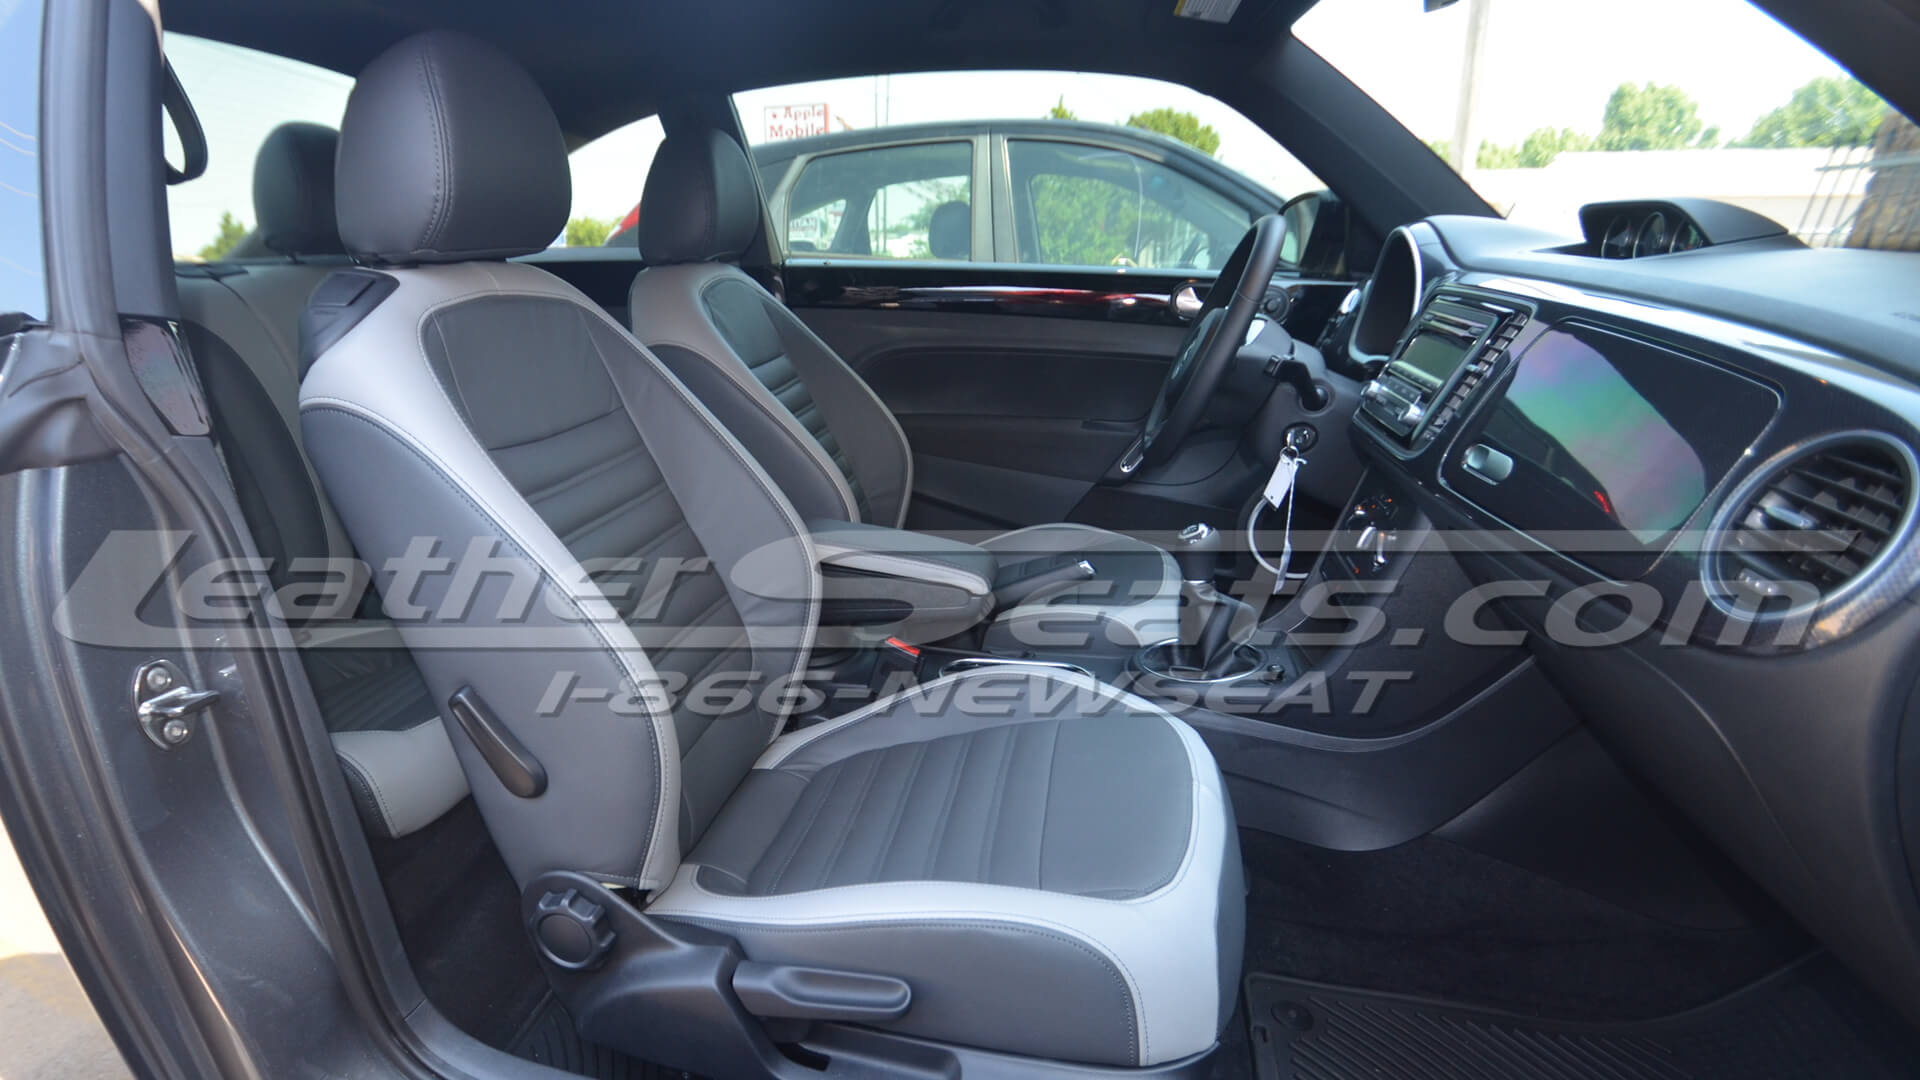 2012 Volkswagen Beetle custom leather interior - Graphite and Ash - Front passenger seat